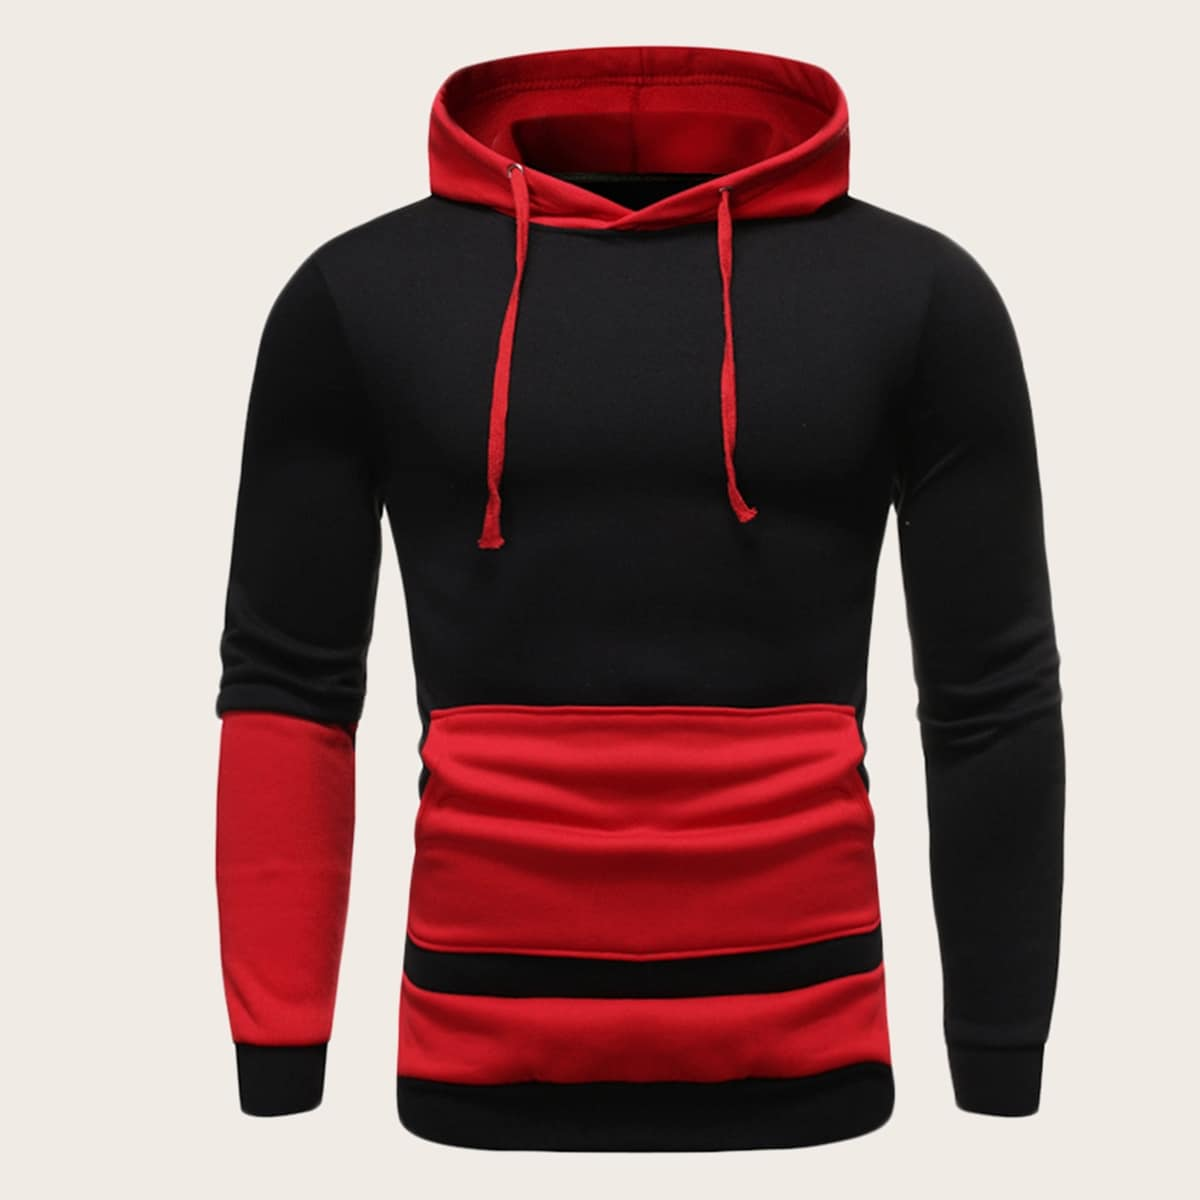 Men Cut And Sew Drawstring Hooded Sweatshirt